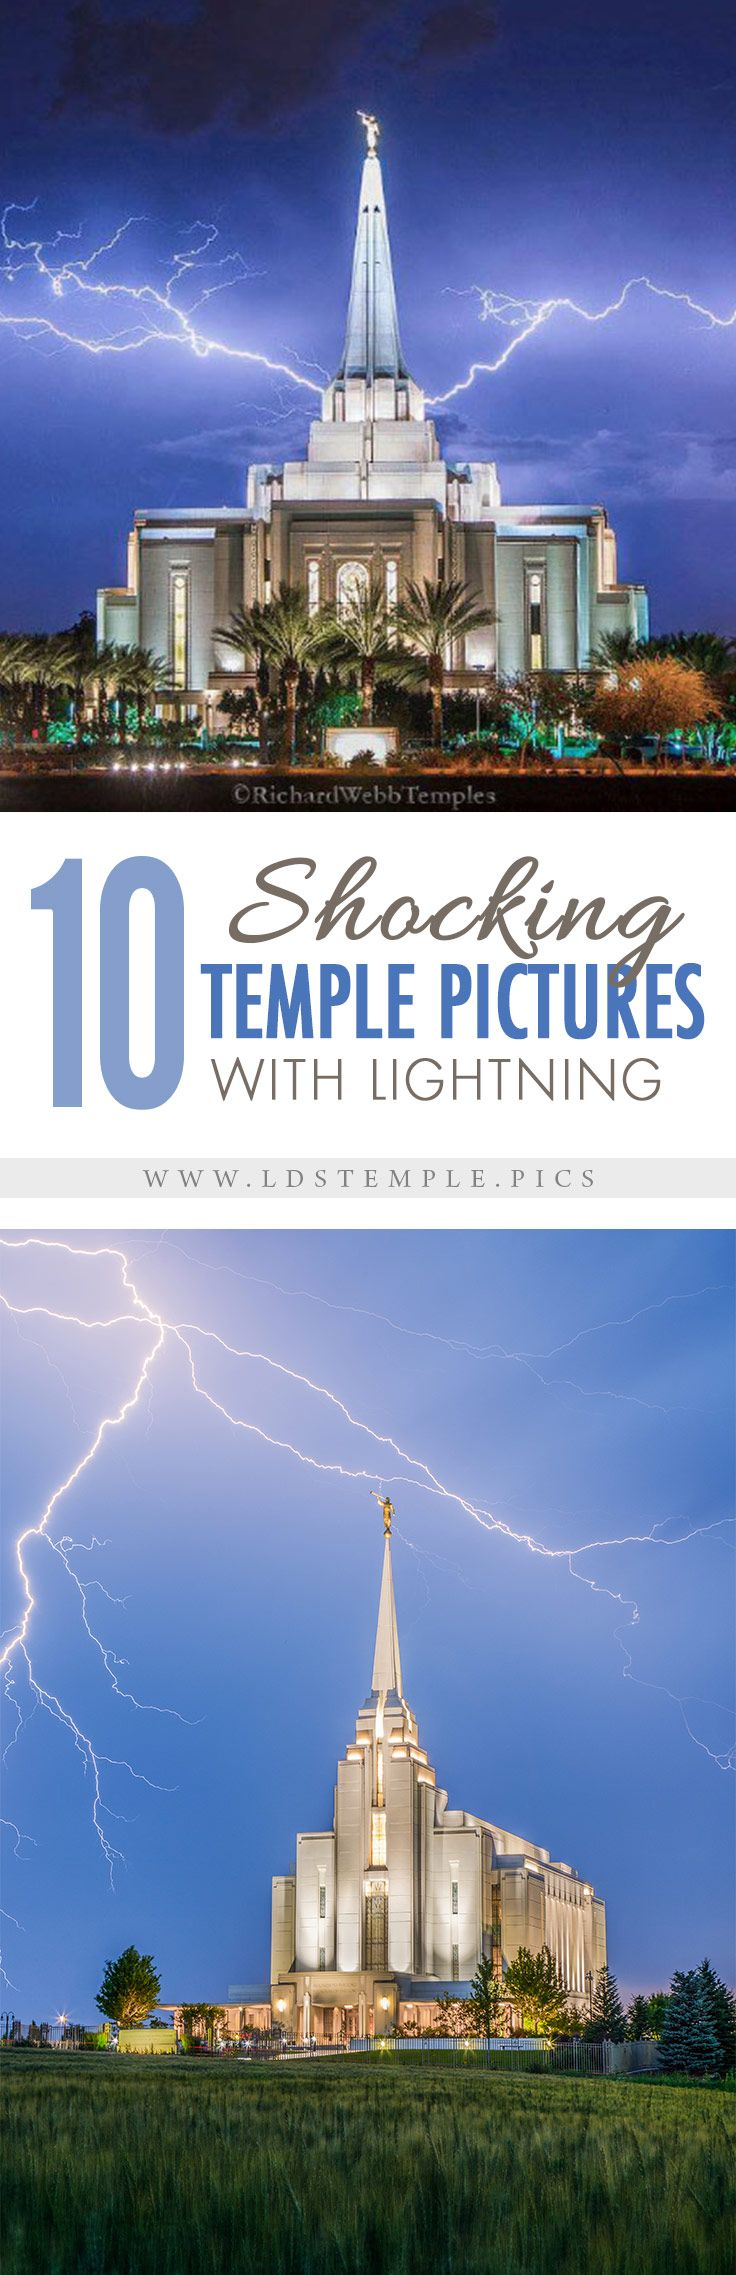 10 Pictures of LDS Temples with Lightning   Every year brings spring and summer storms and the annual monsoon season. So here are 10 shocking (pun intended!) photos of LDS temples and lightning.